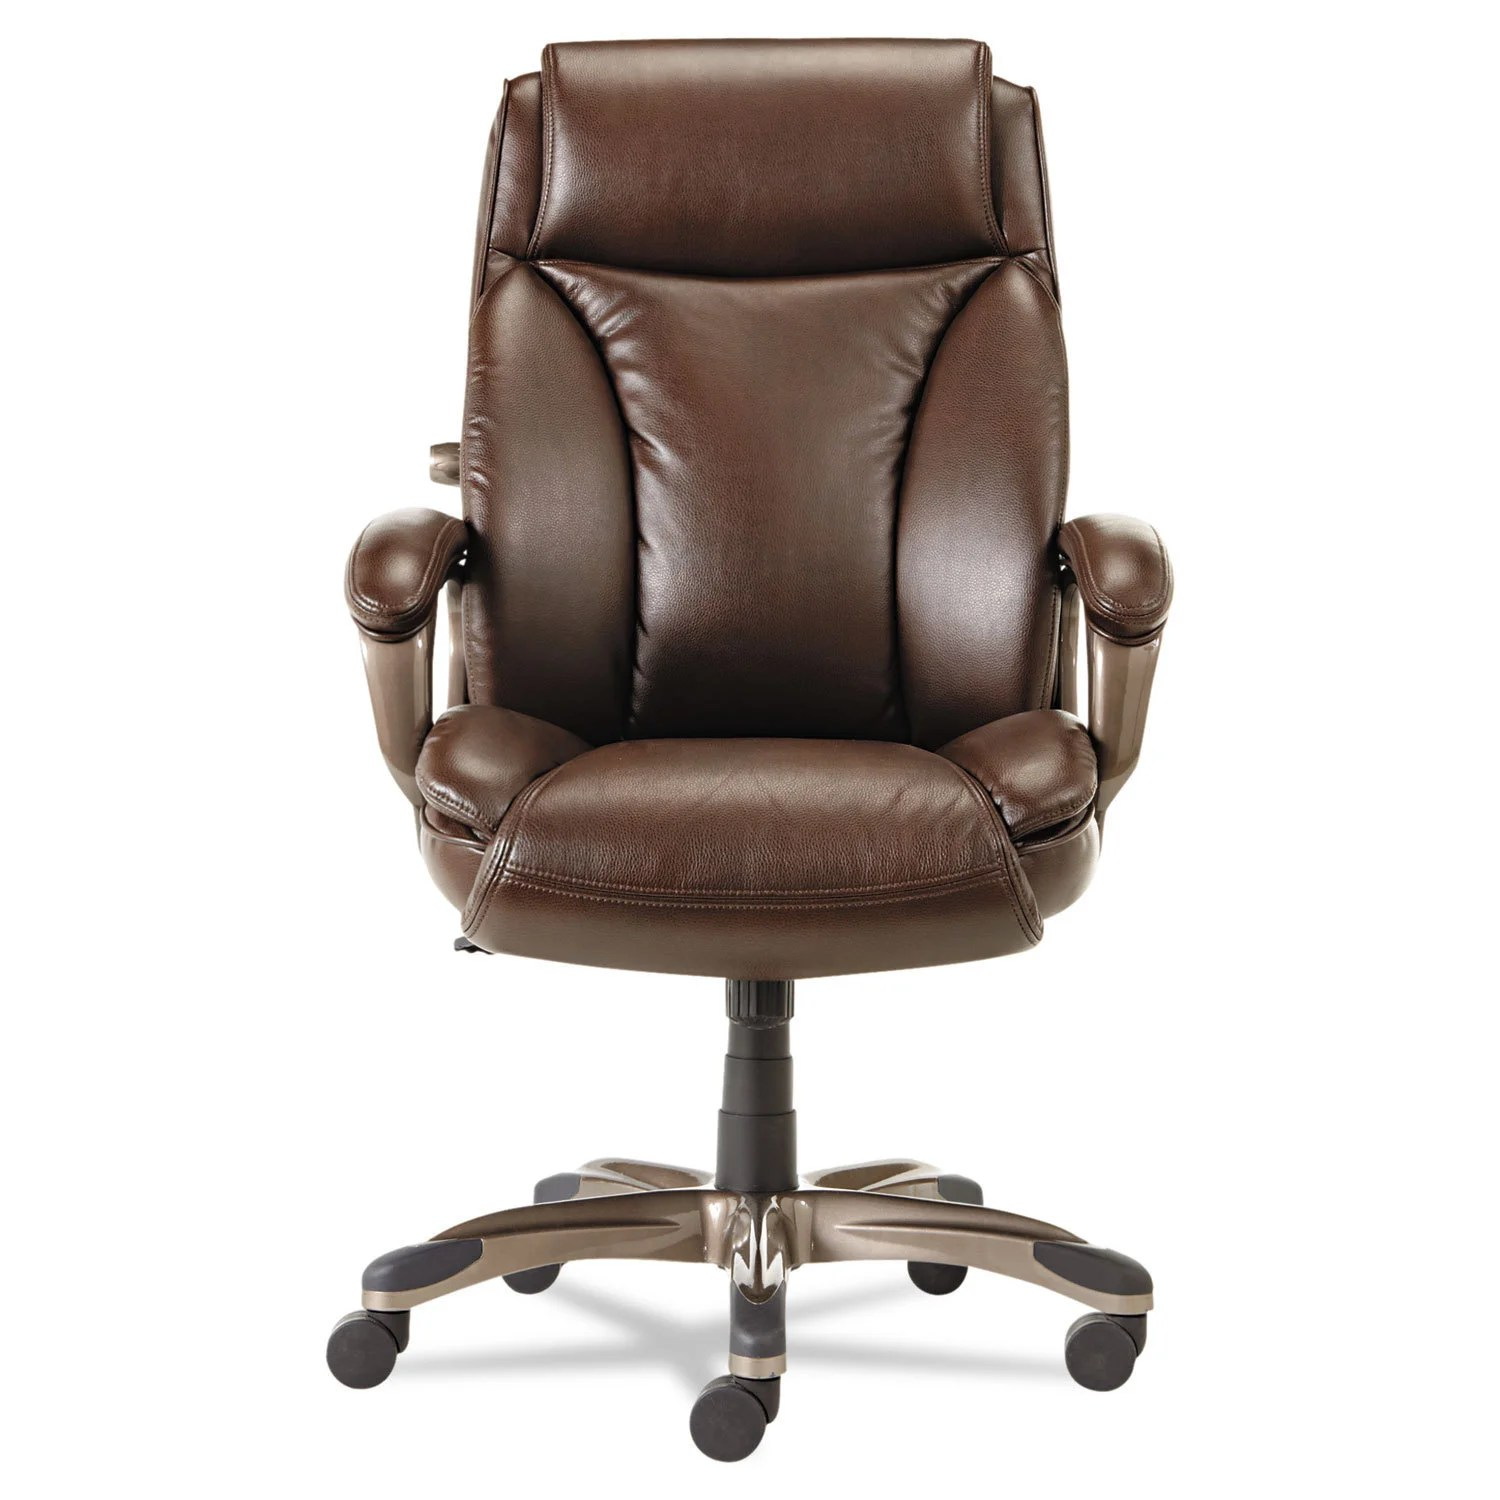 Executive Leather Chair Alera Veon Series Brown Executive High Back Leather Chair W Coil Spring Cushioning